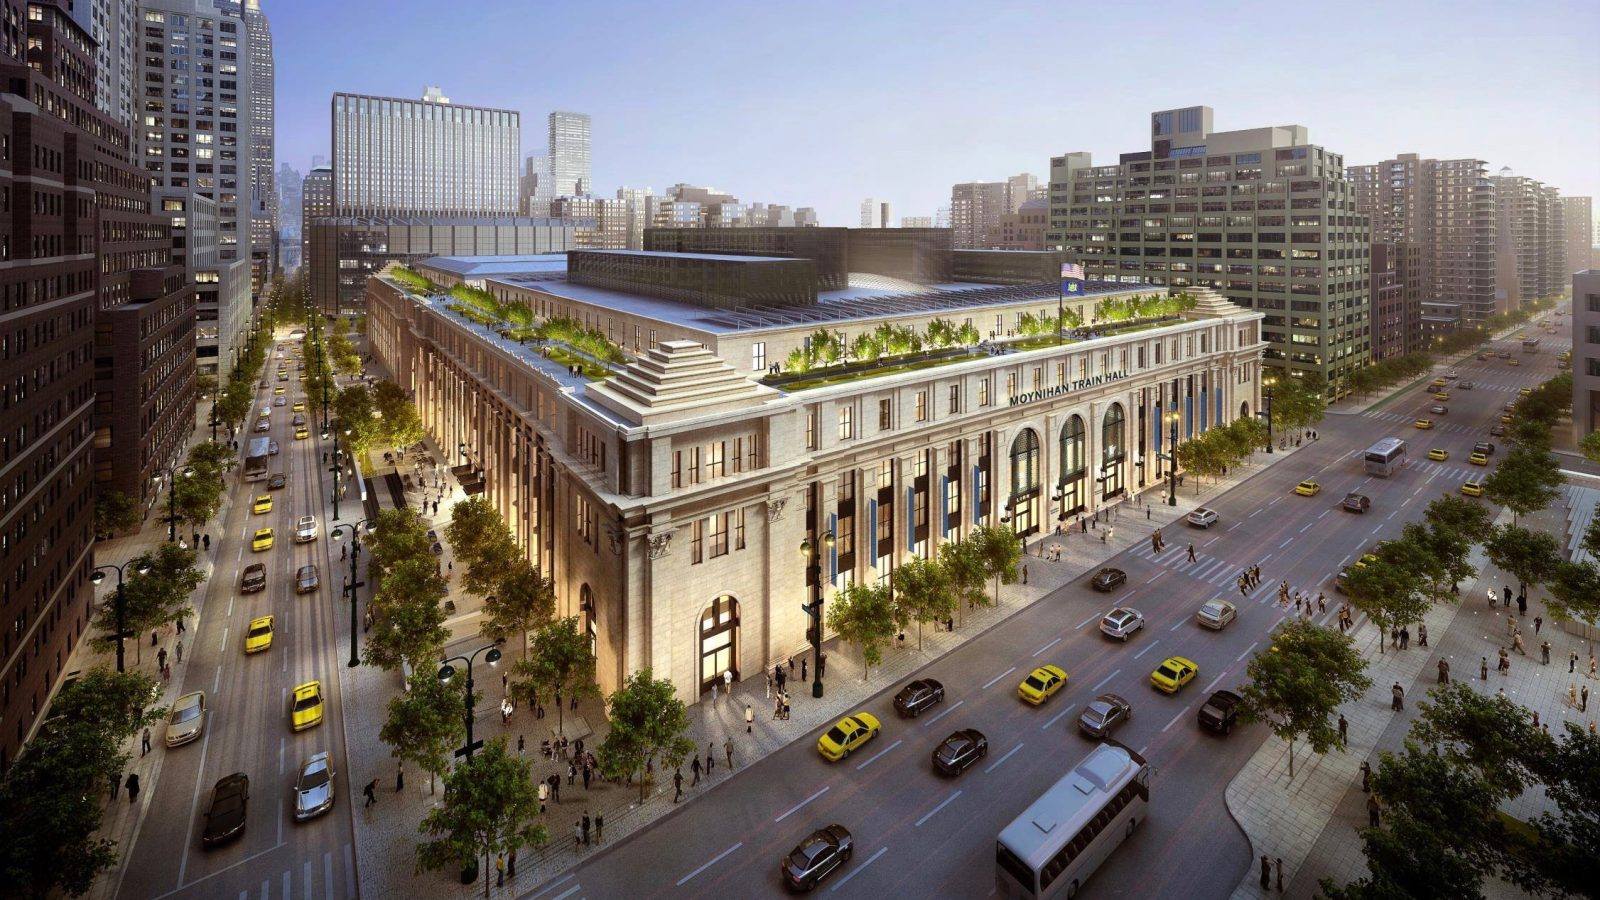 Apple battling with Facebook for 740,000 sq. ft of office space in Manhattan